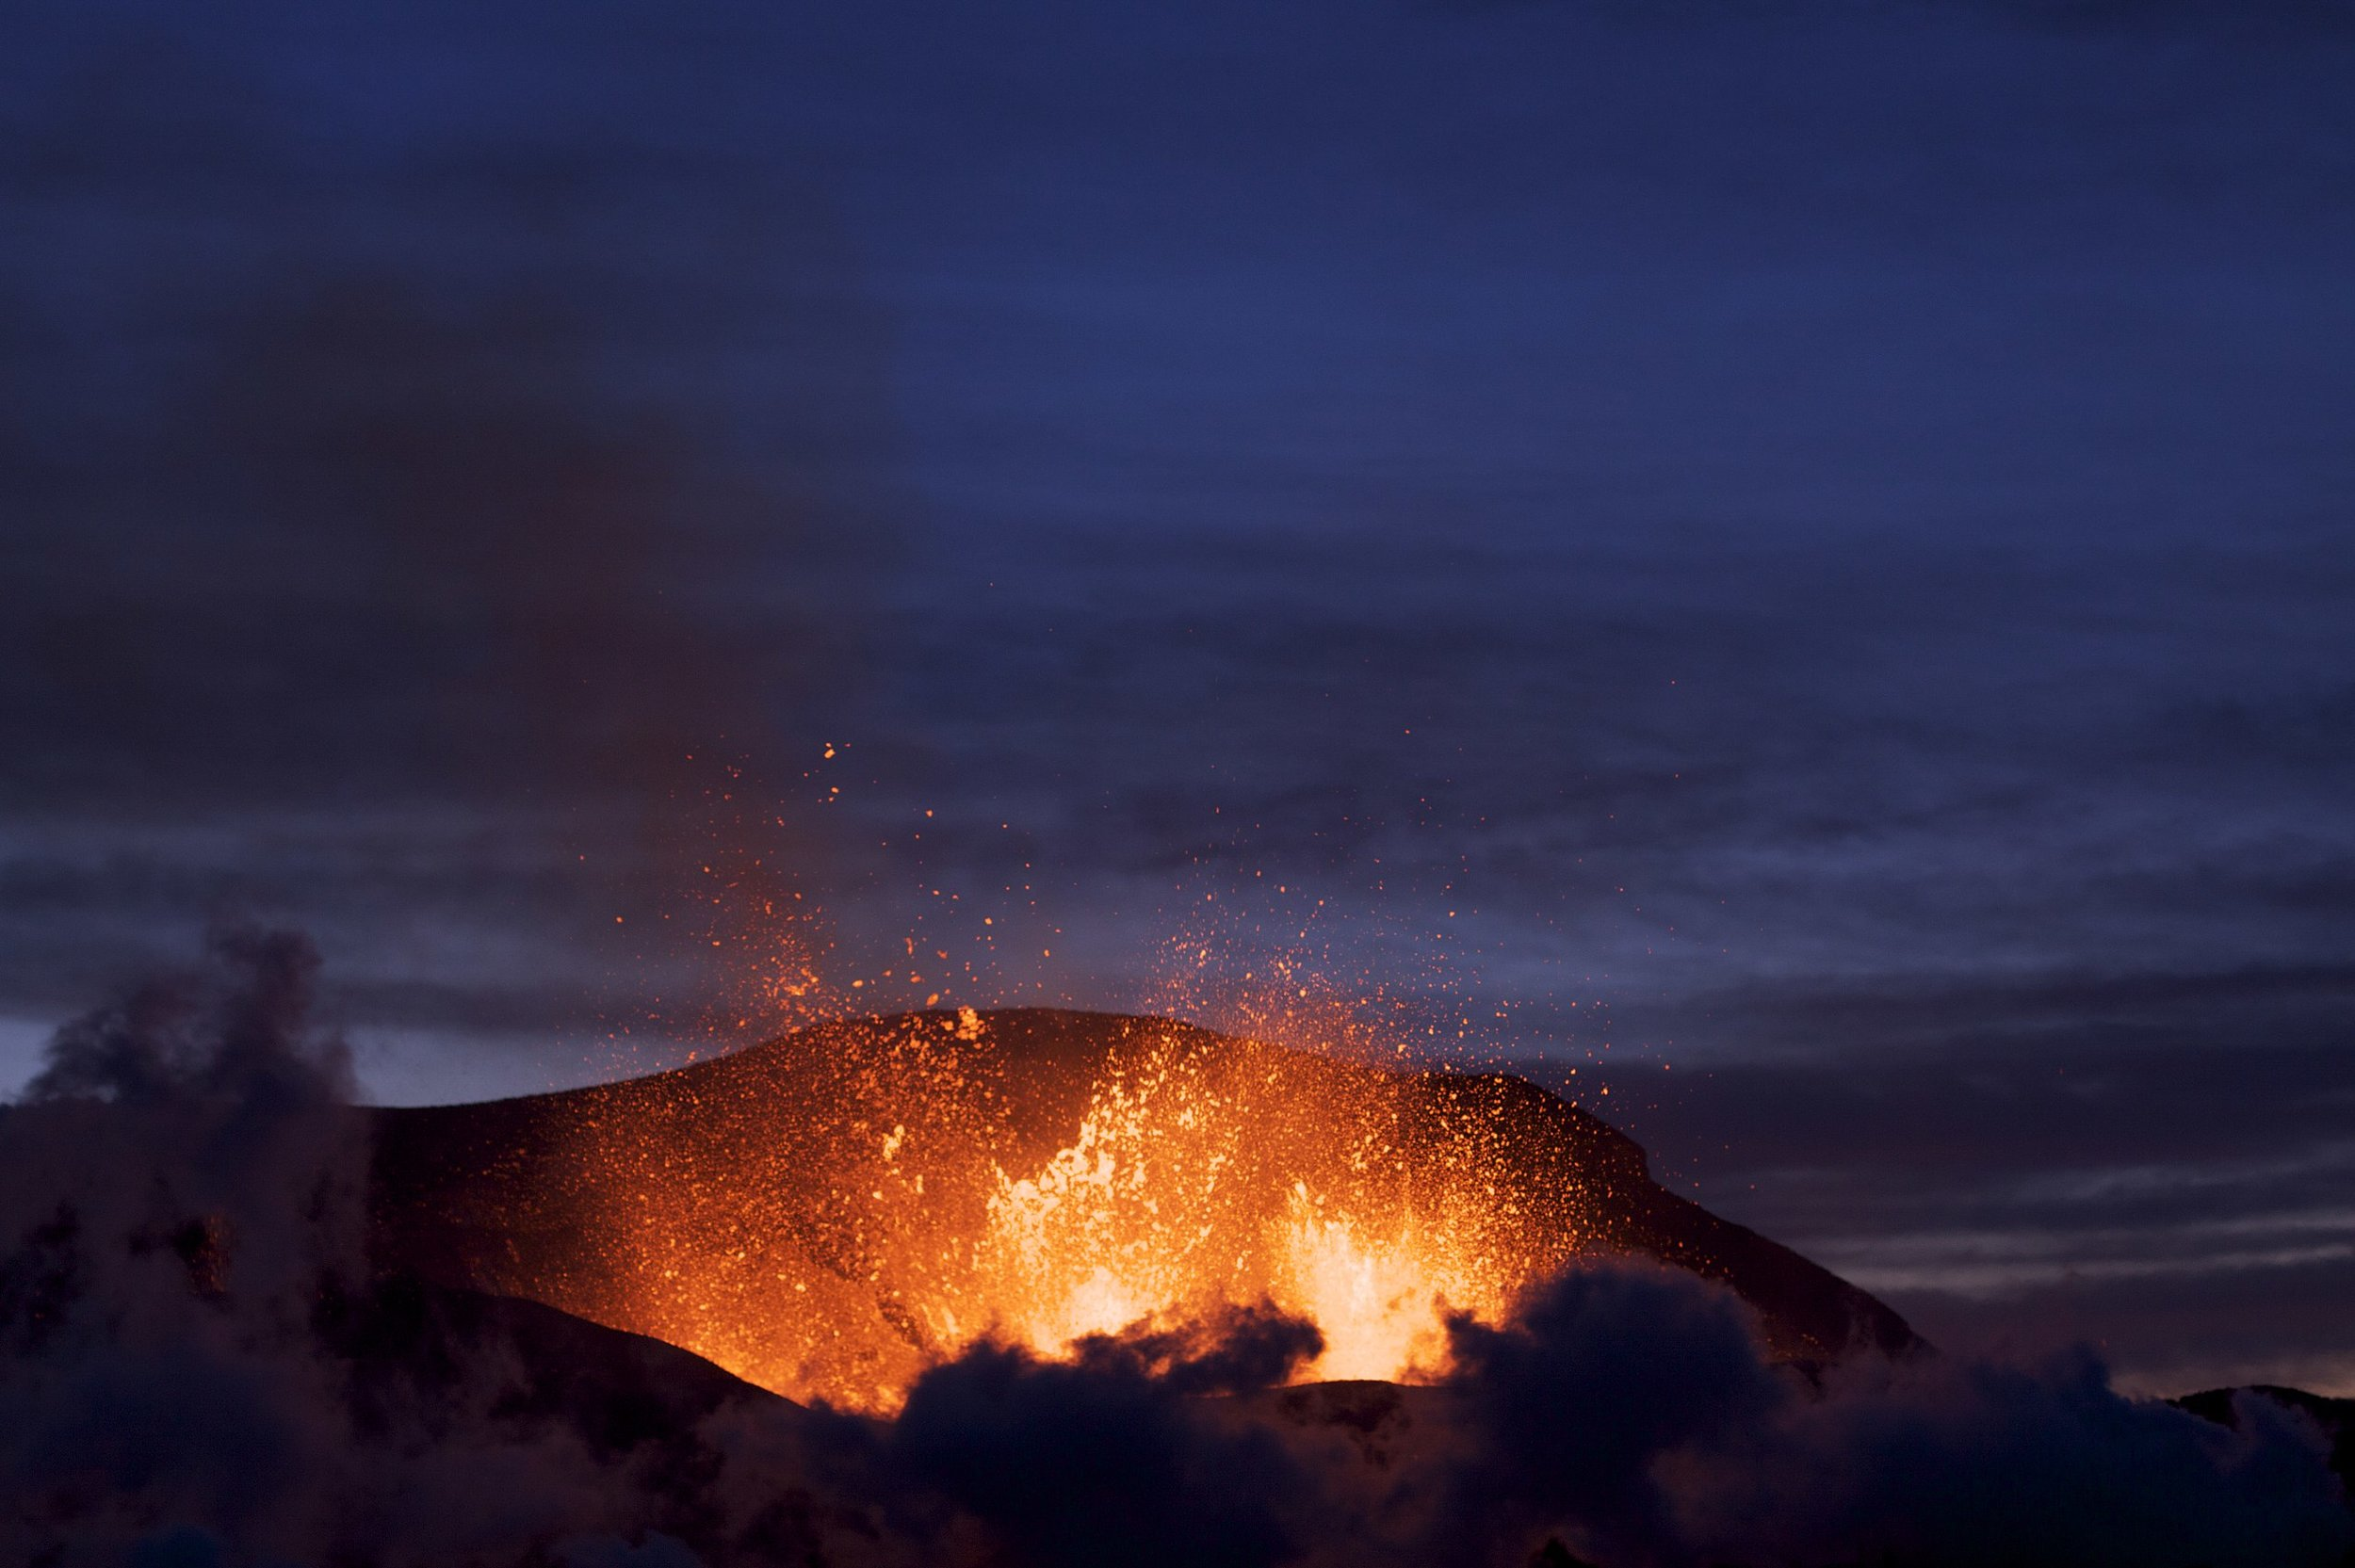 The Icelandic volcano Fimmvörðuháls in 2010. By Boaworm - Own work, CC BY 3.0, https://commons.wikimedia.org/w/index.php?curid=10025261